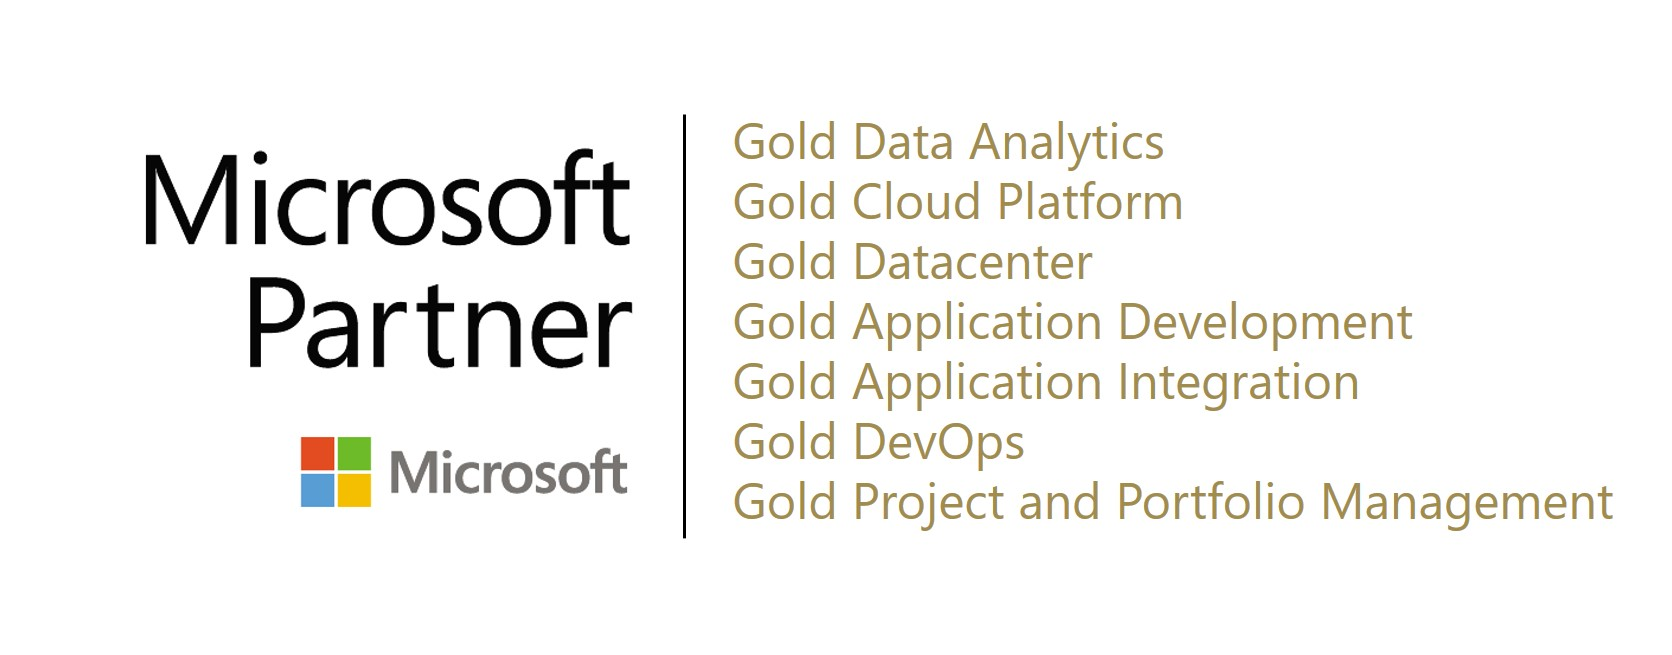 MSFT gold competencies 2021